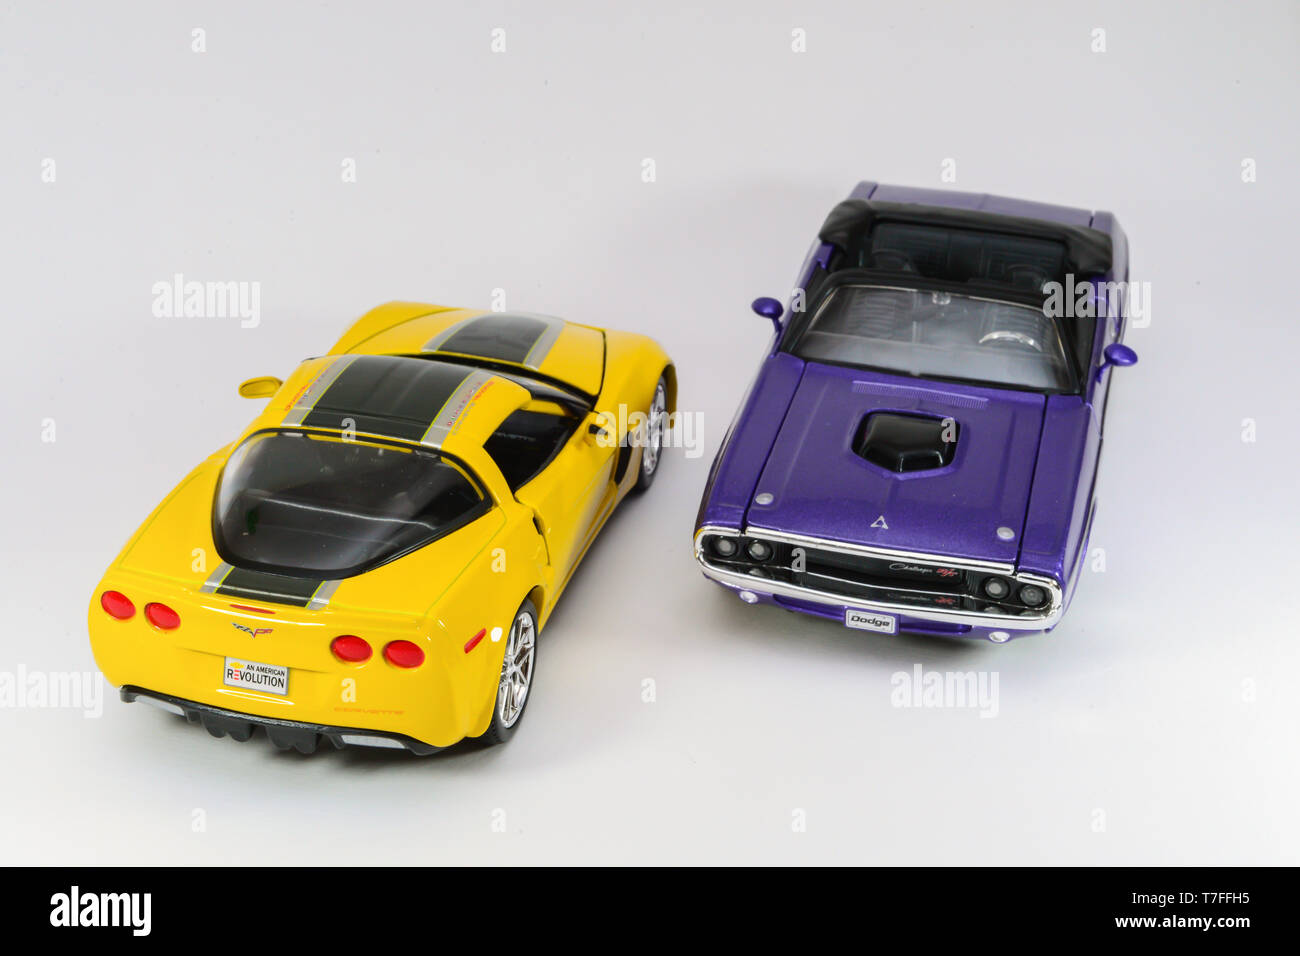 7 December 2016, Eskisehir, Turkey. Assorted diecast model cars on white isolated background Stock Photo